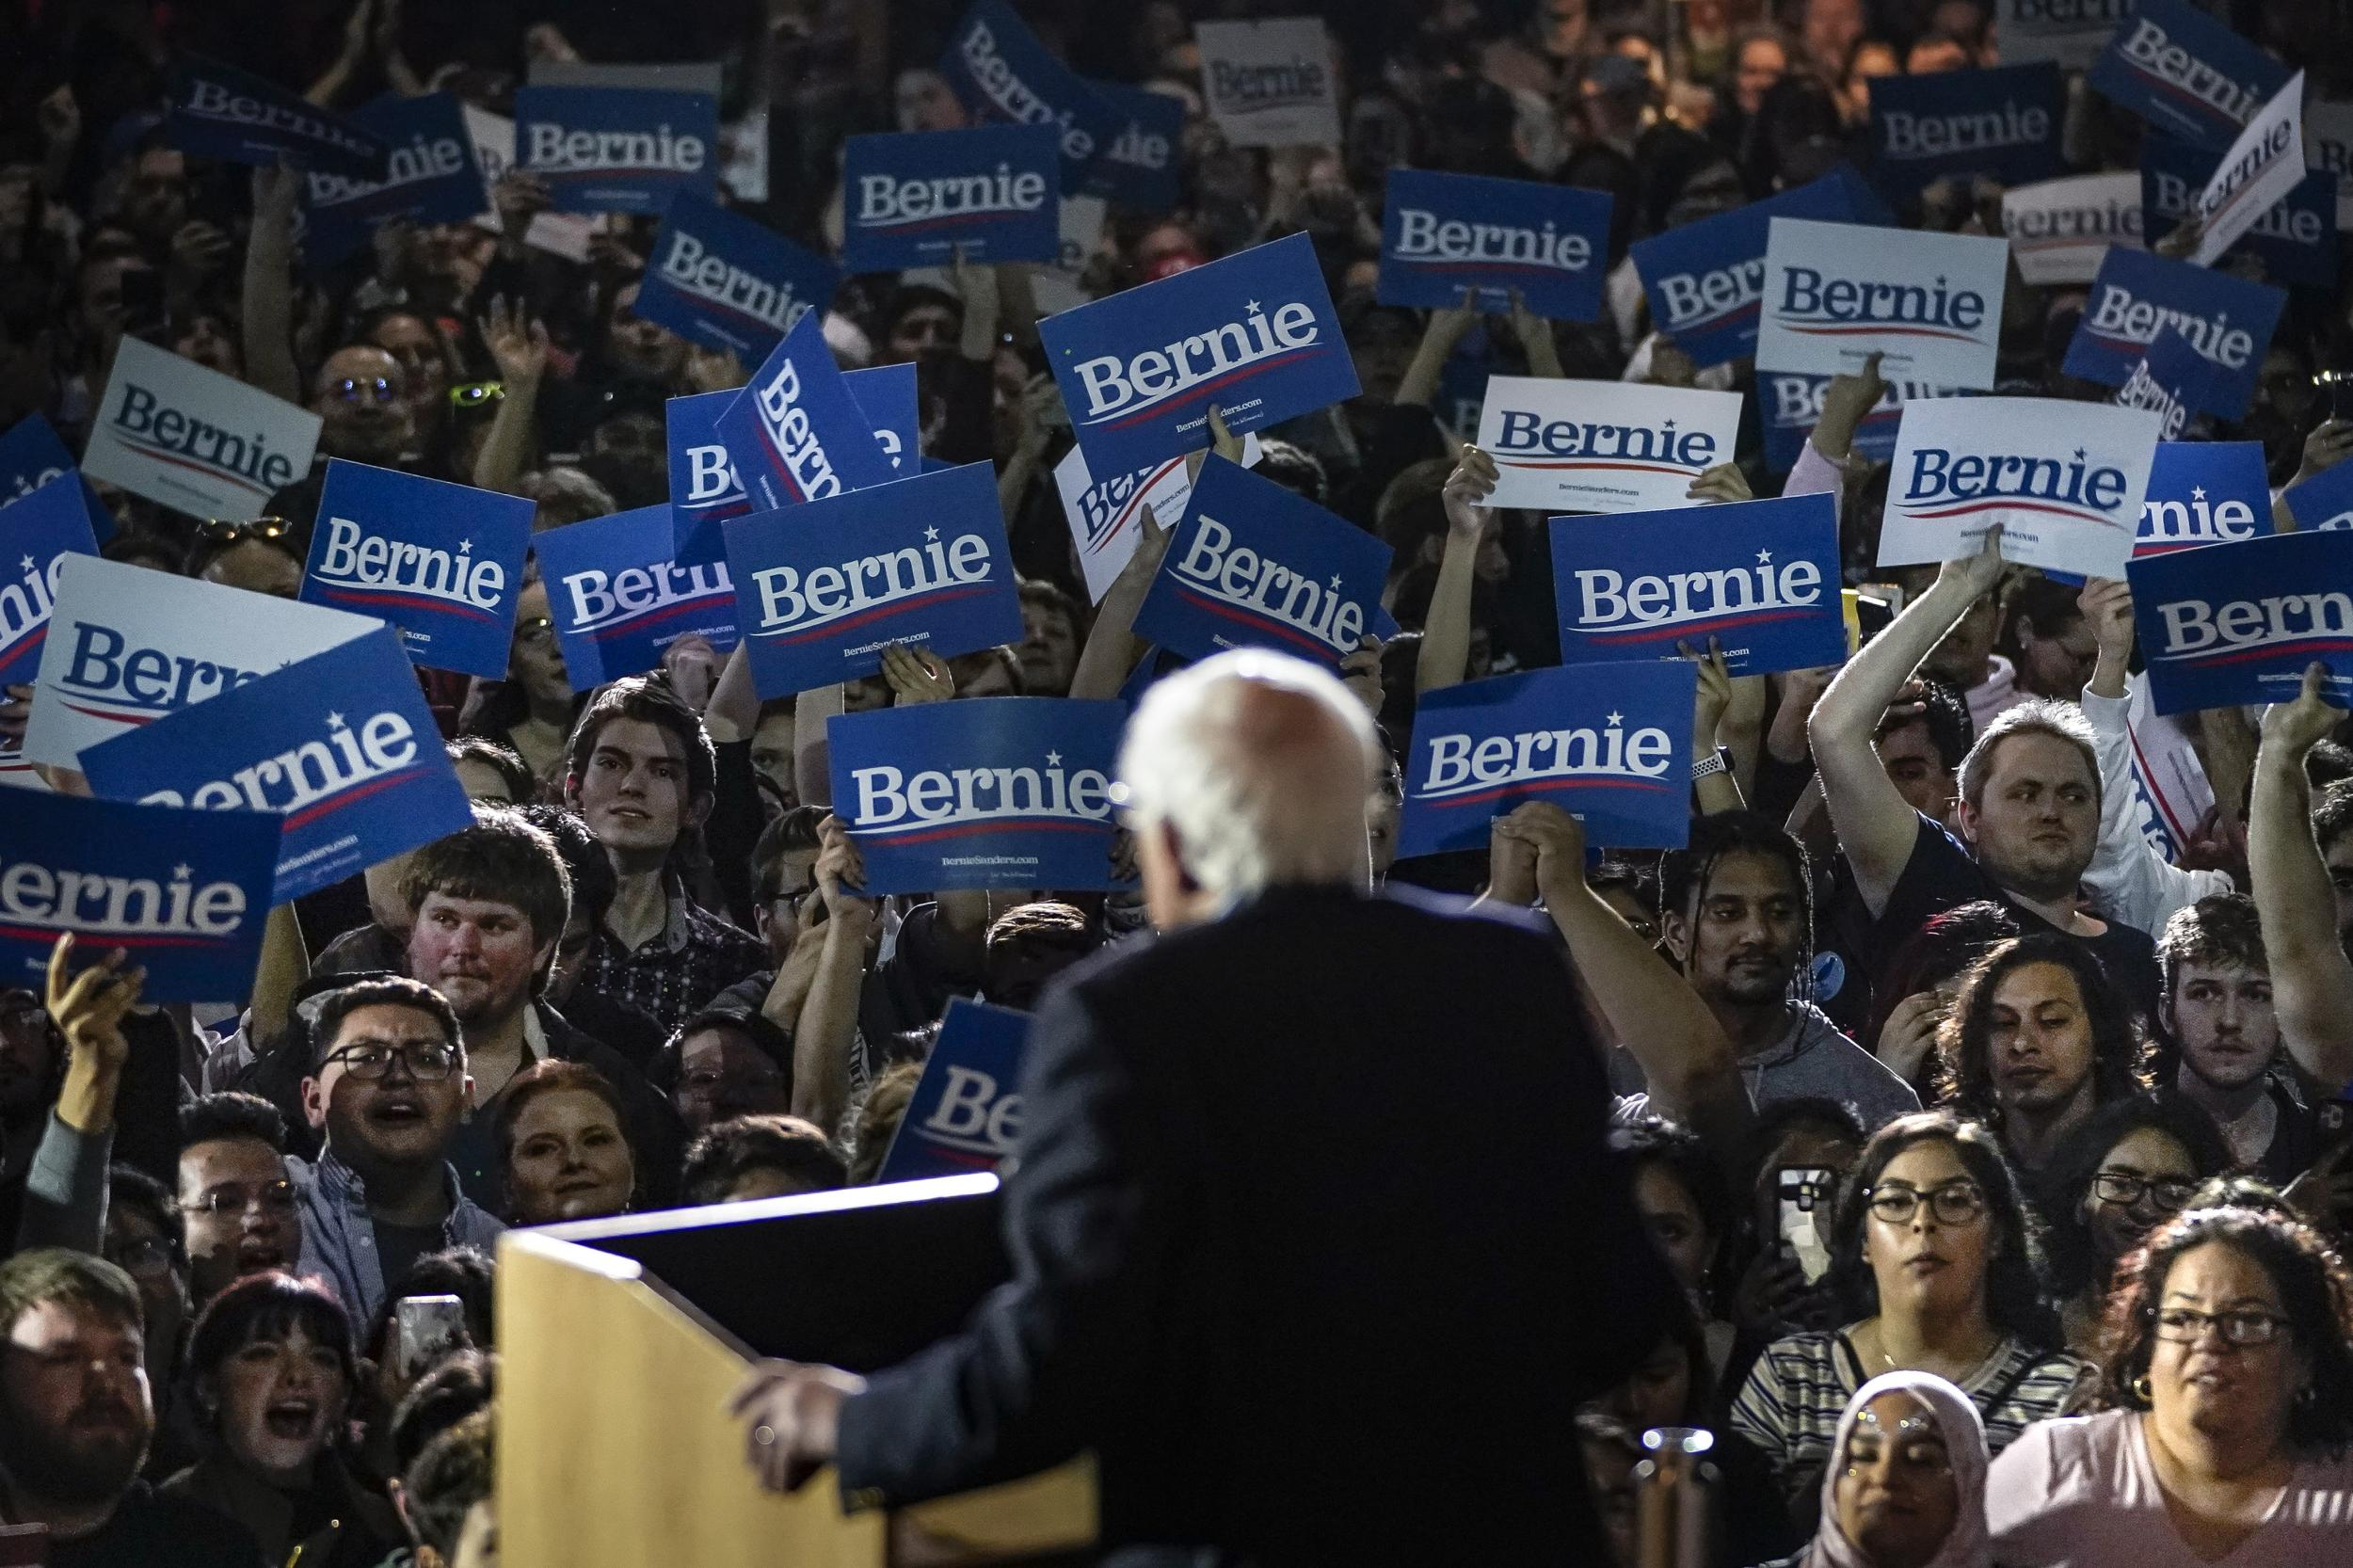 It looks like Bernie Sanders will be the nominee. Here are 5 ways he can unite Democrats